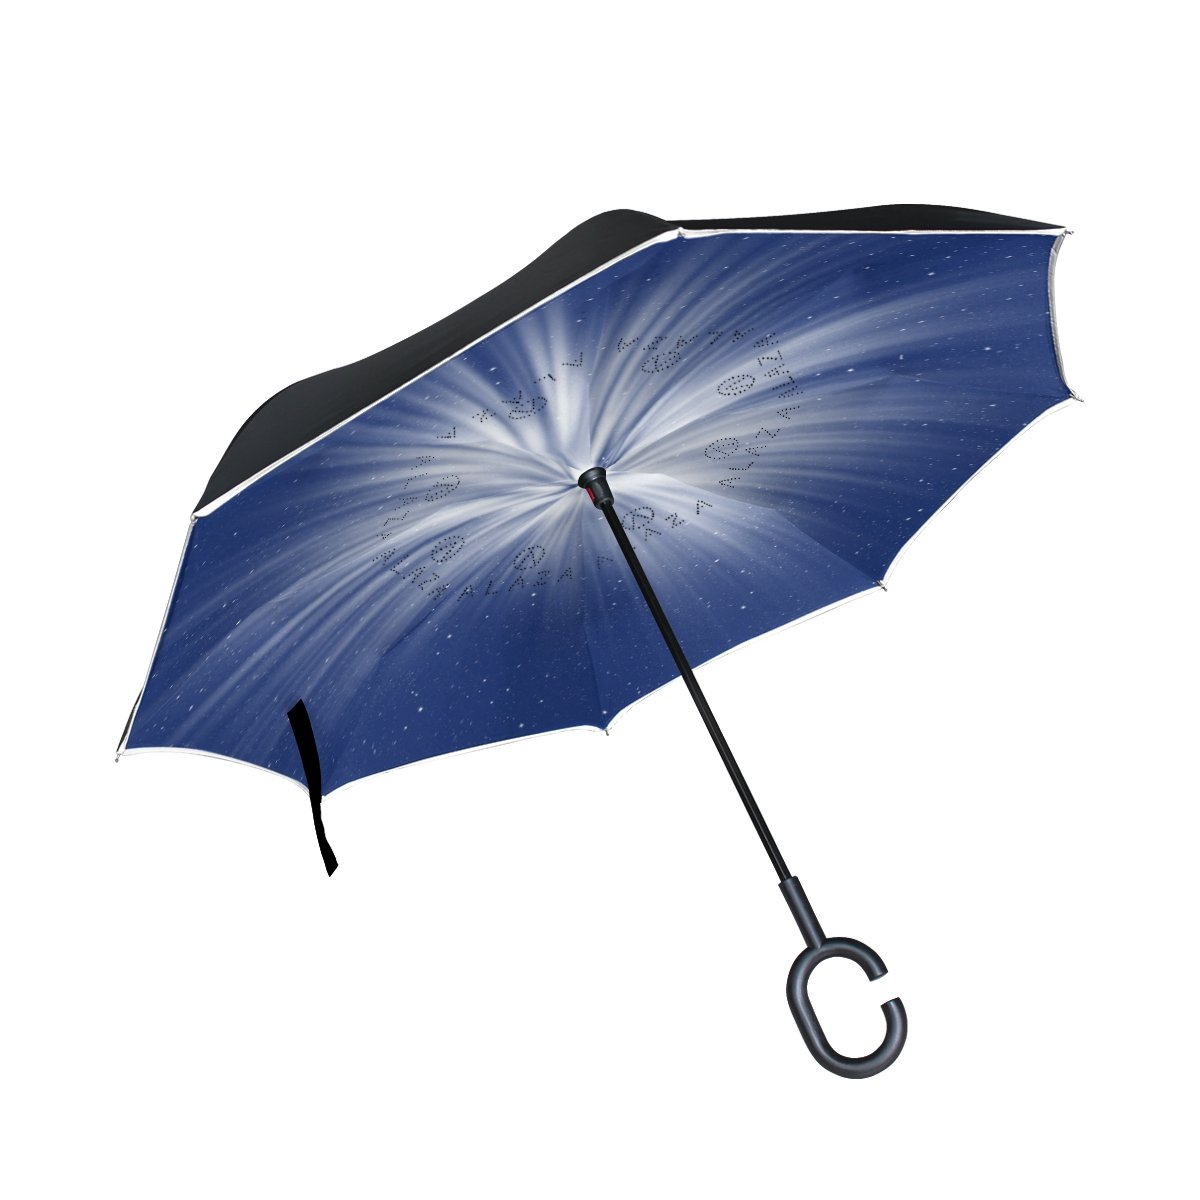 Inverted Umbrella Purple Sky Umbrella, Double Layer Inverted Umbrella-Waterproof Protection Umbrella Perfect For Car & Outdoor Self-Standing With C-Shaped Handle-Amazing Holiday Gift OREZI